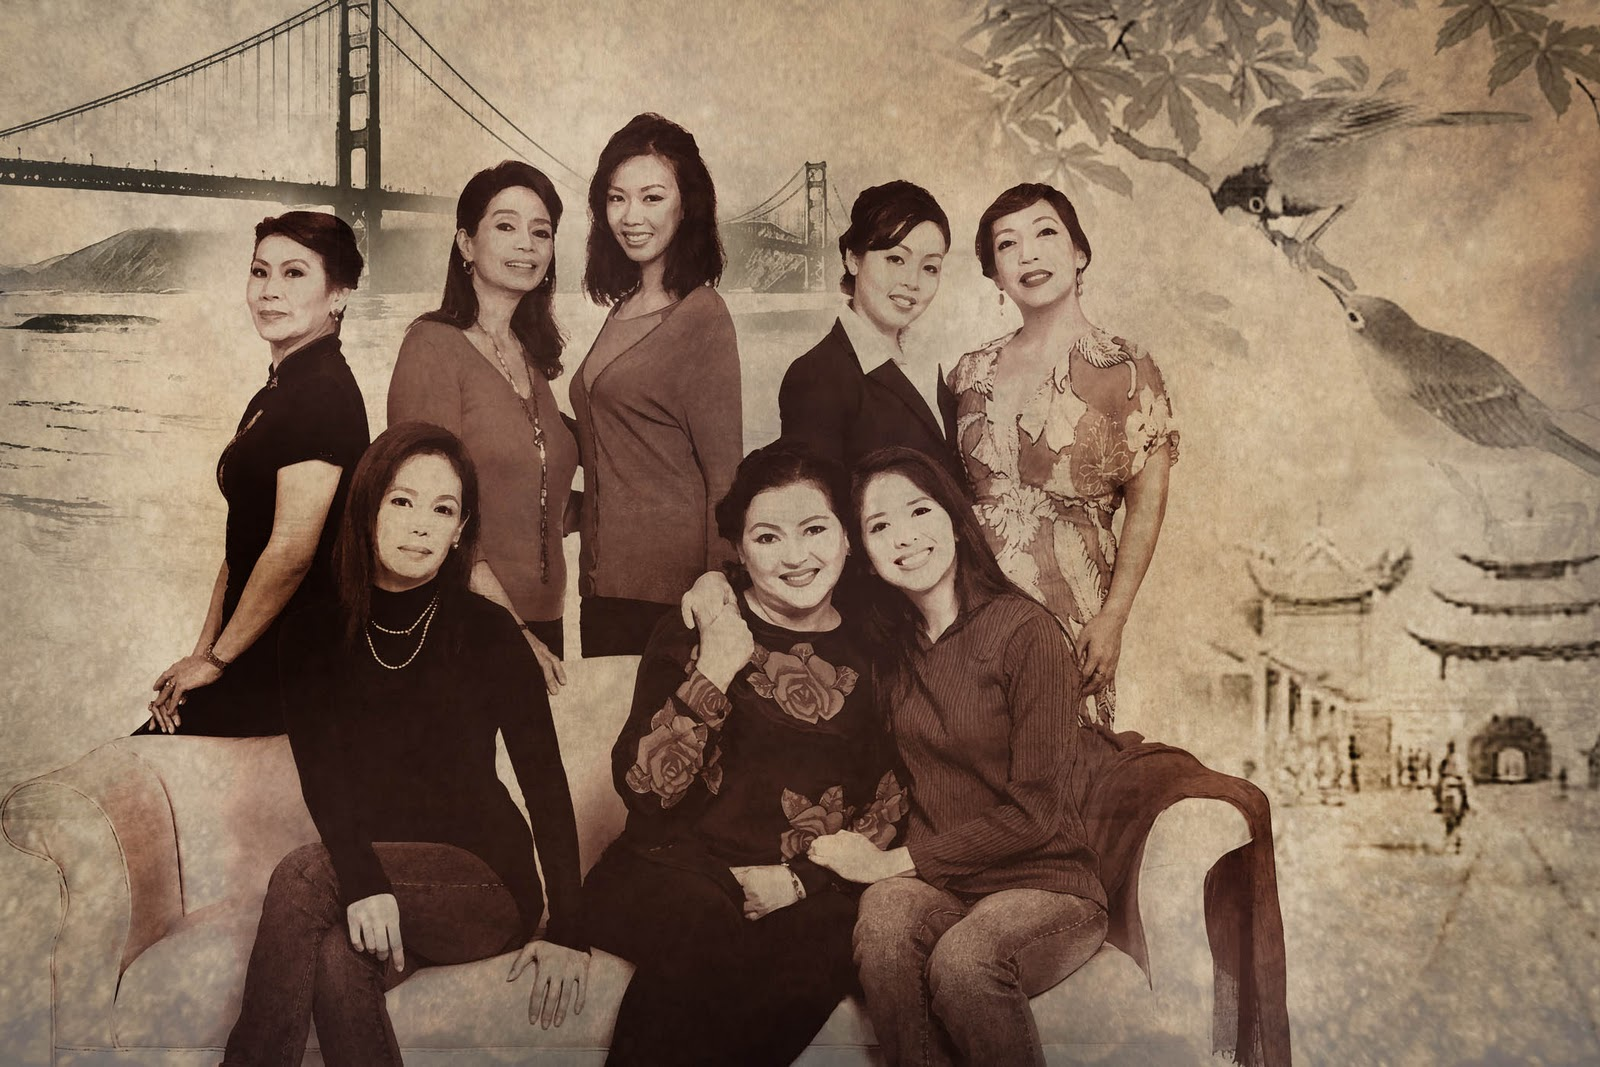 overtures and finales repertory stages the joy luck repertory stages the joy luck club from feb 4 to 20